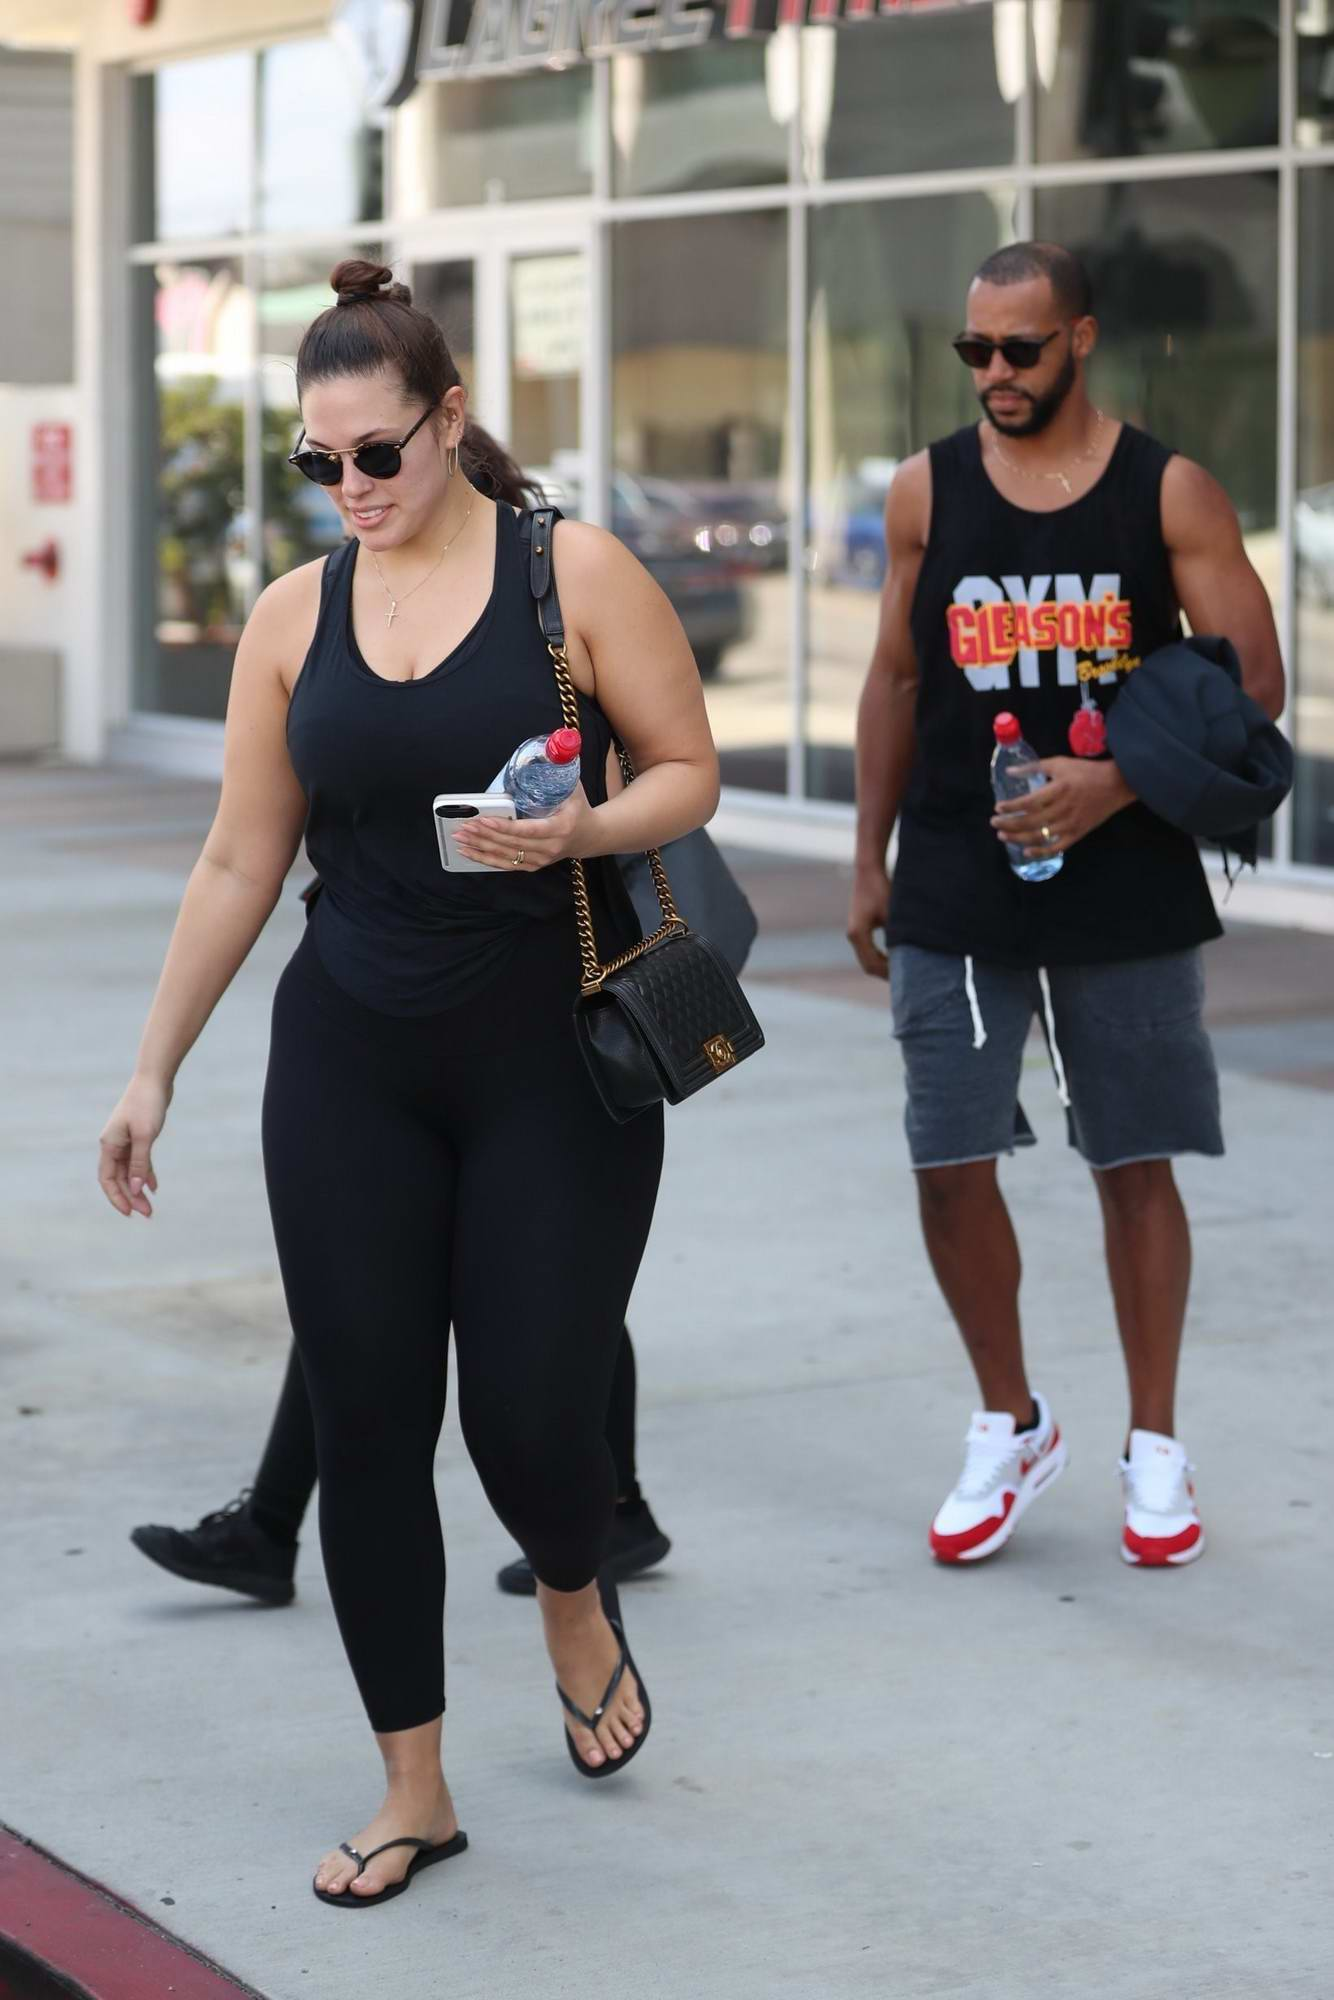 678630ab96f61 ashley graham working out in a gym with her husband-240517_15